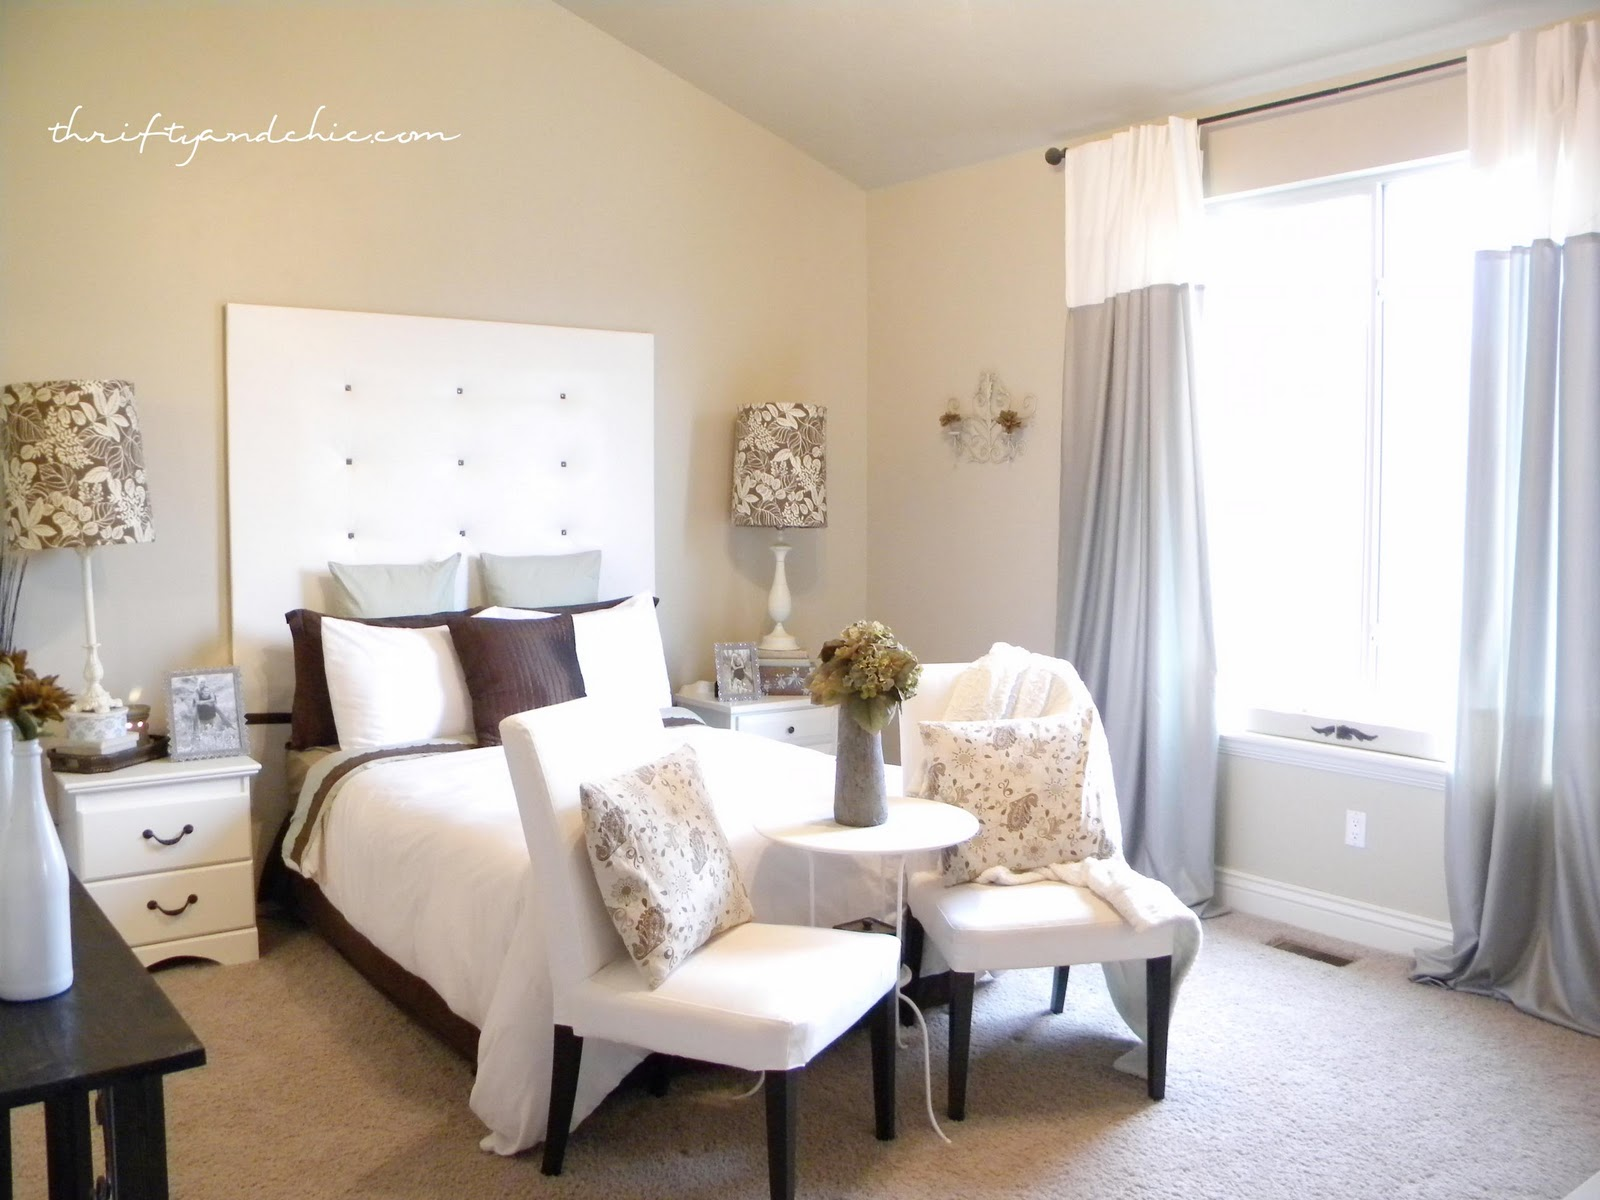 Thrifty and chic diy projects and home decor Modern chic master bedroom